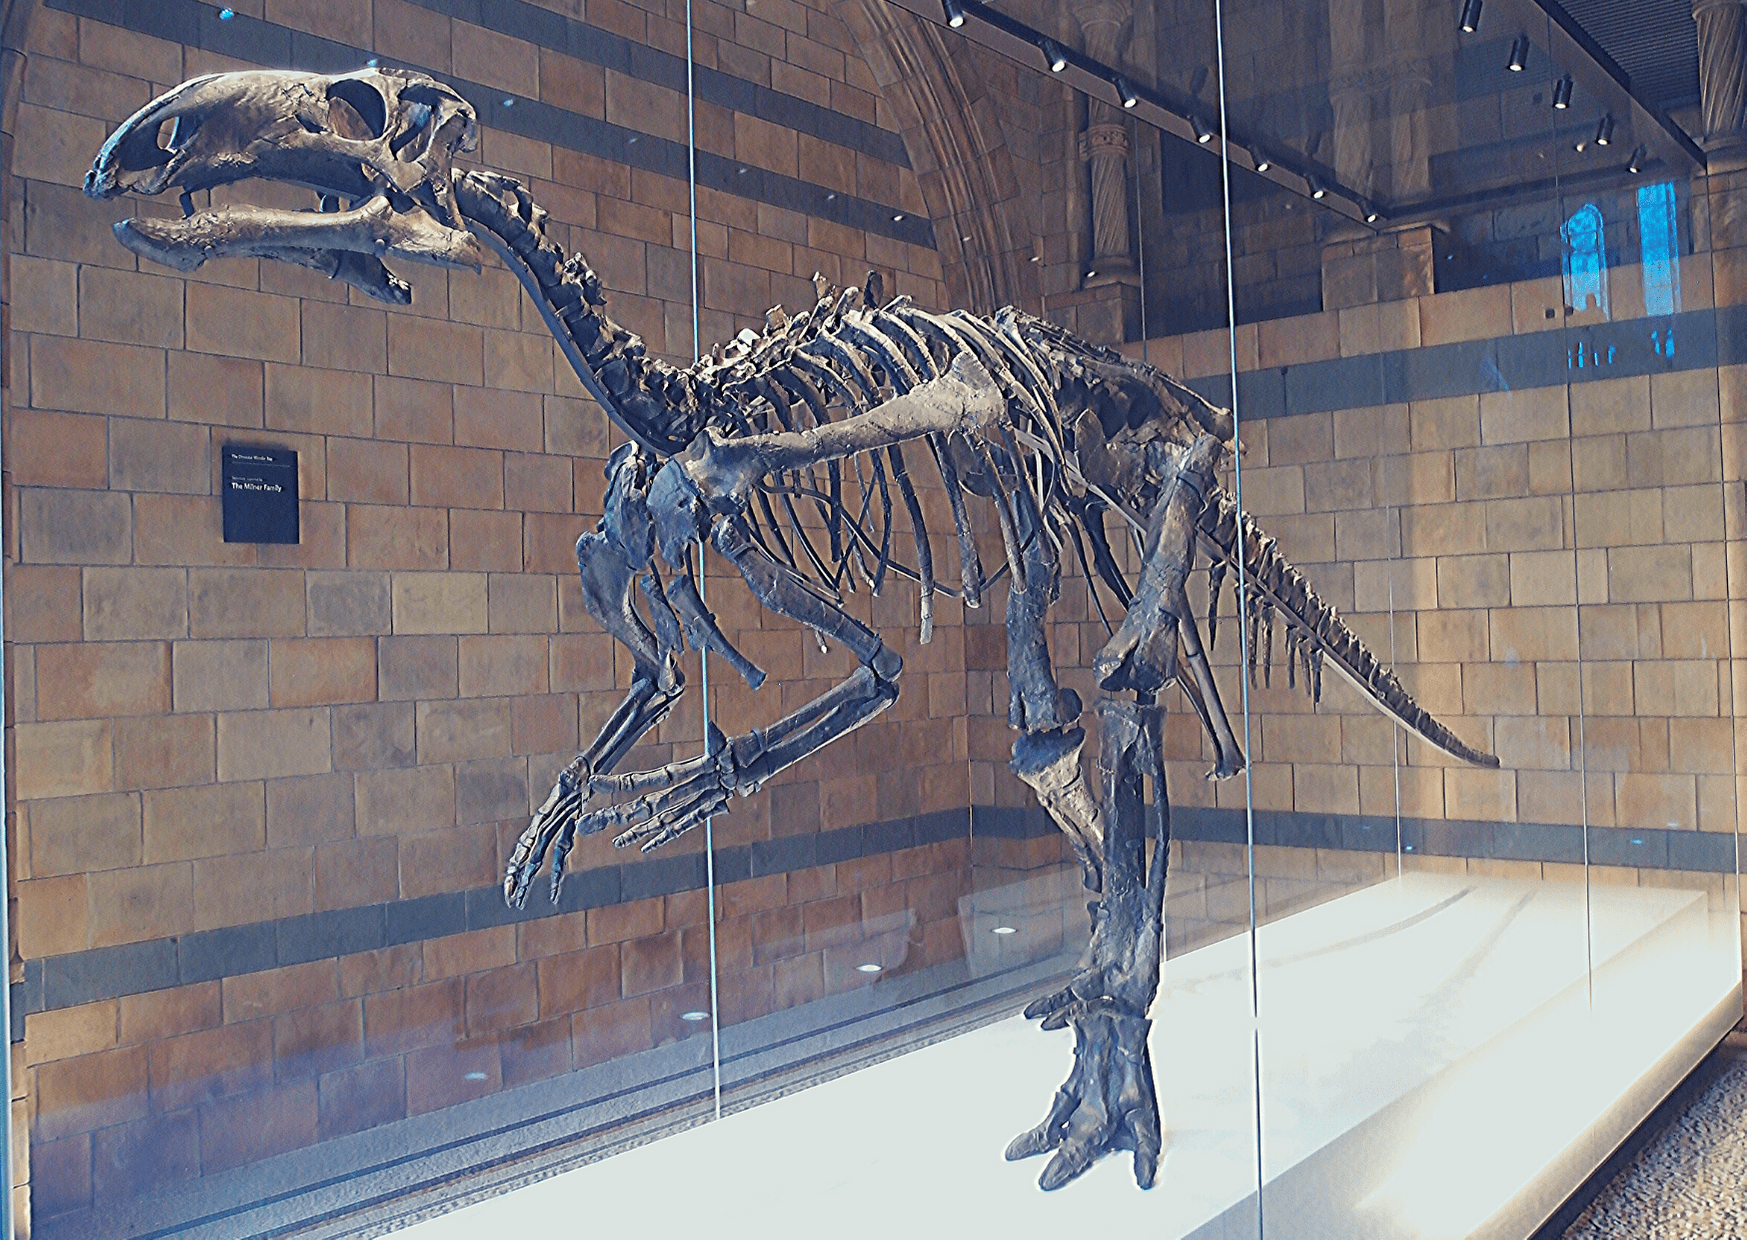 London's dinosaurs, including the Mantellisaurus, on the dinosaur fossils found in the UK